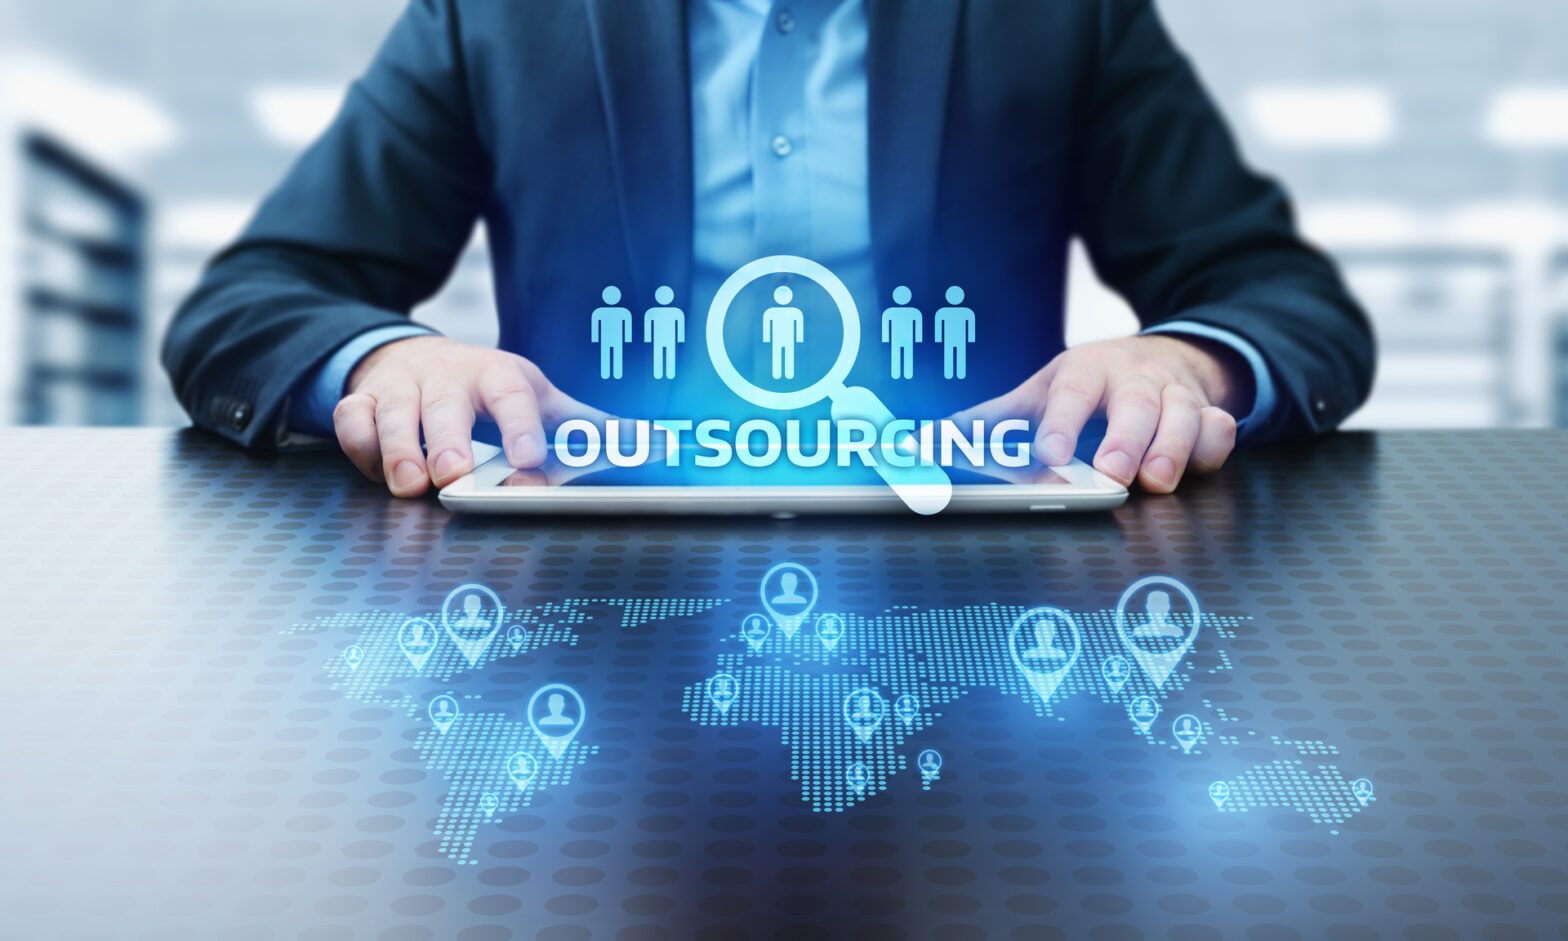 Evolution of IT Outsourcing